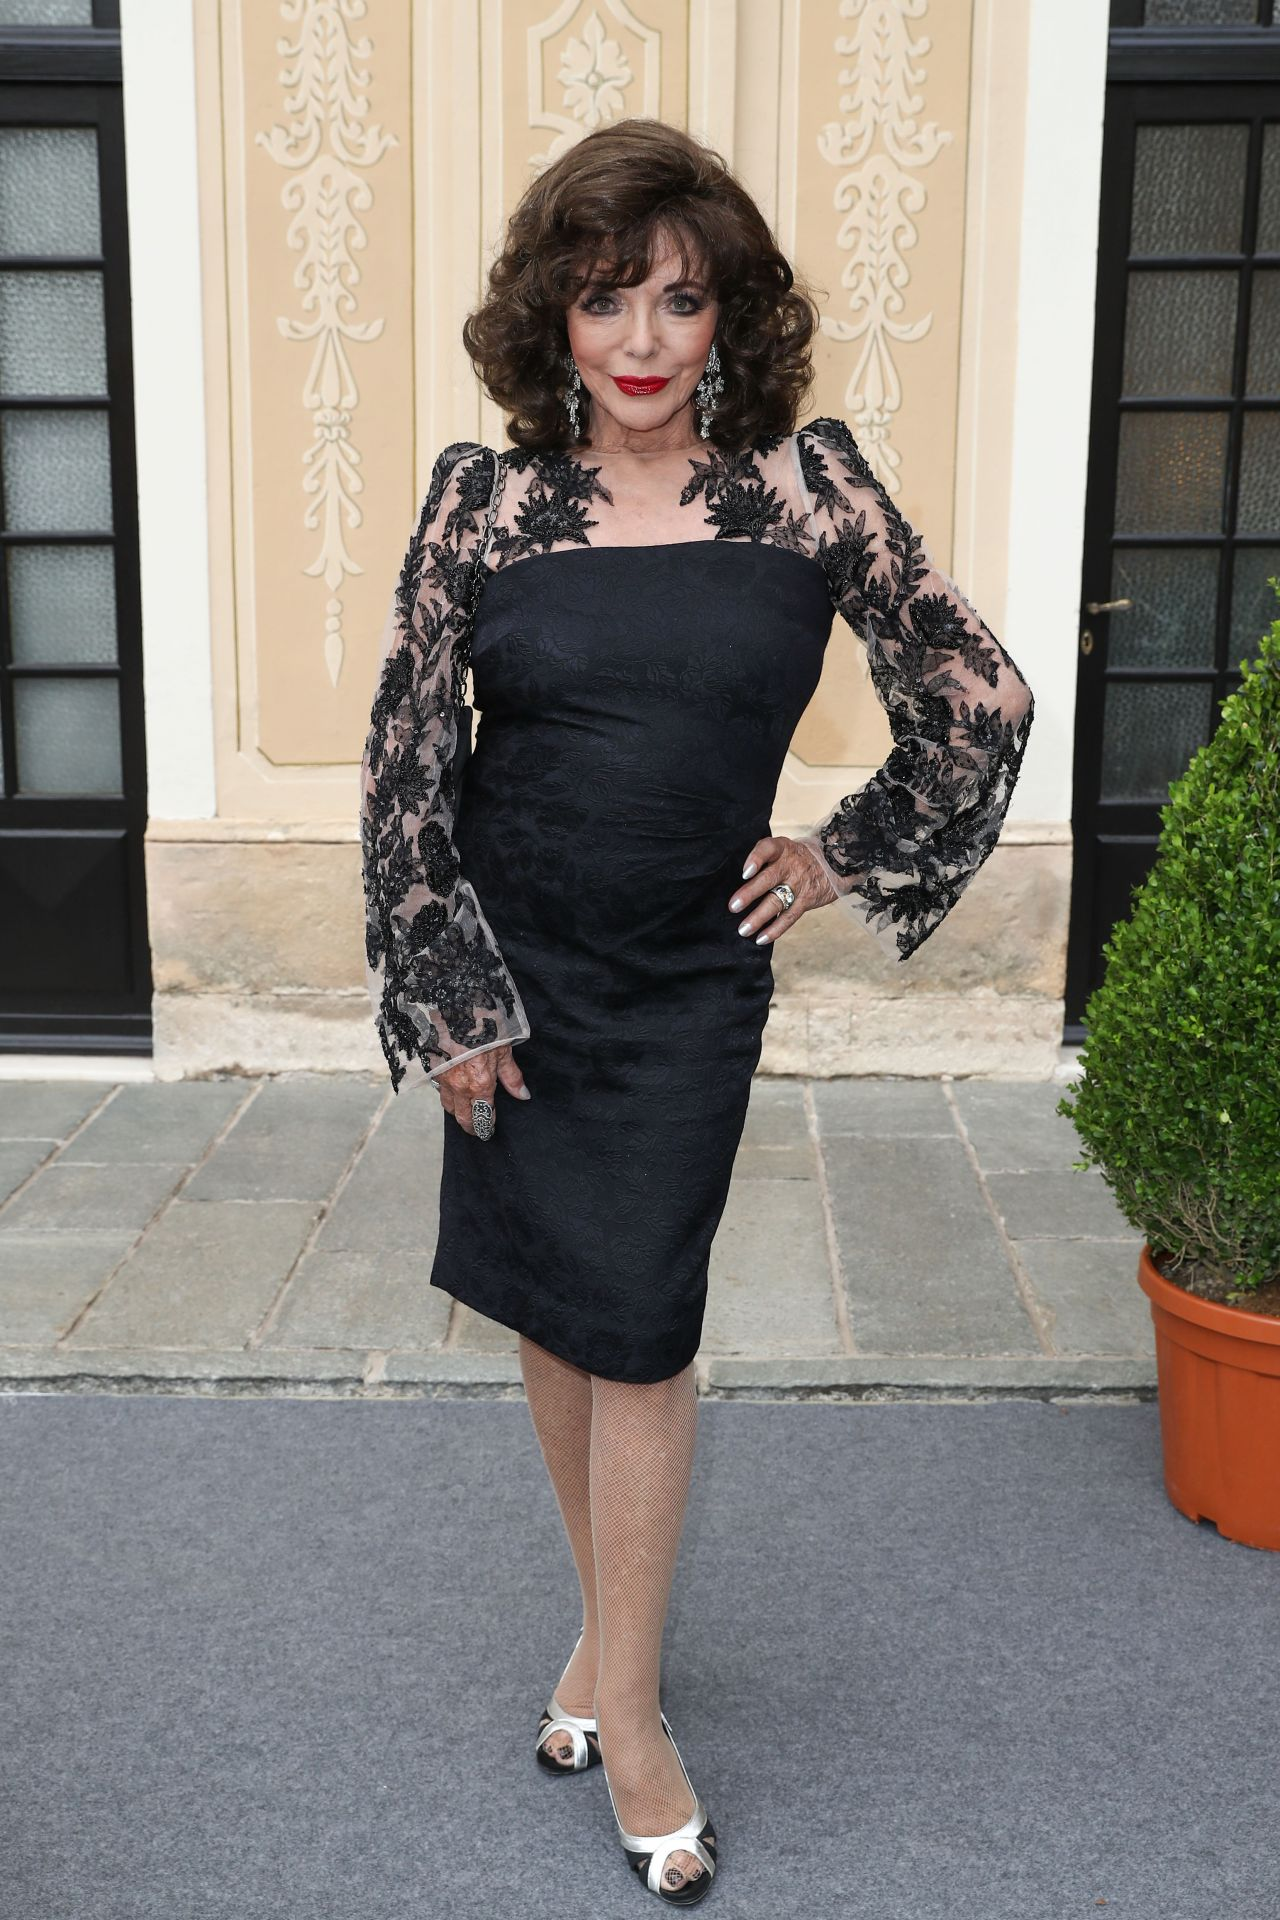 Joan Collins At Monte Carlo Tv Festival Cocktail Party Monaco Palace 06 18 2017